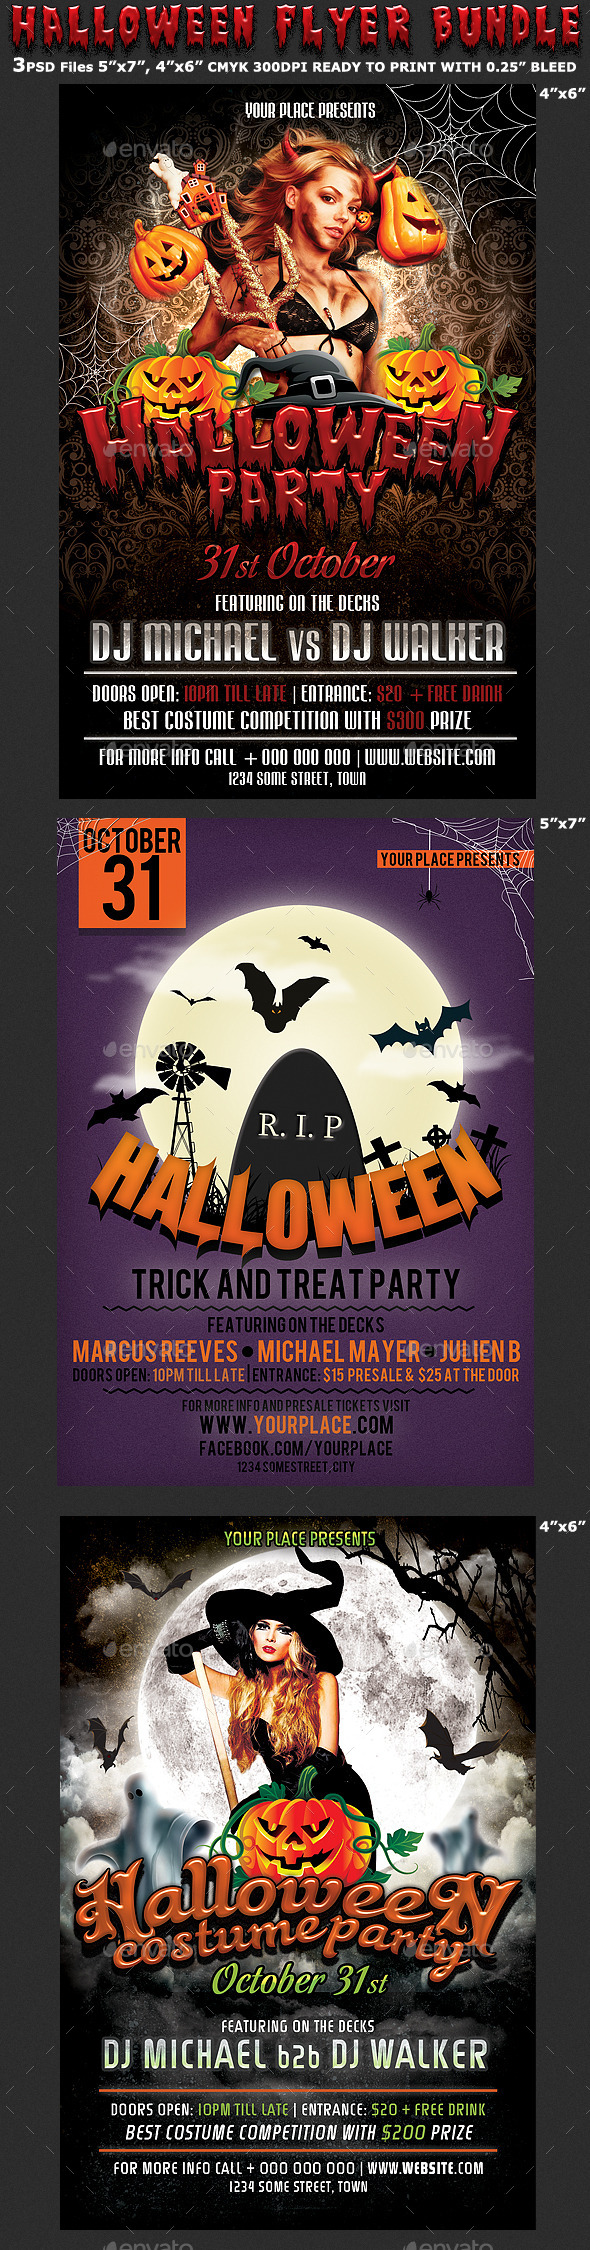 Halloween Party Flyer Bundle 3in1 - Clubs & Parties Events